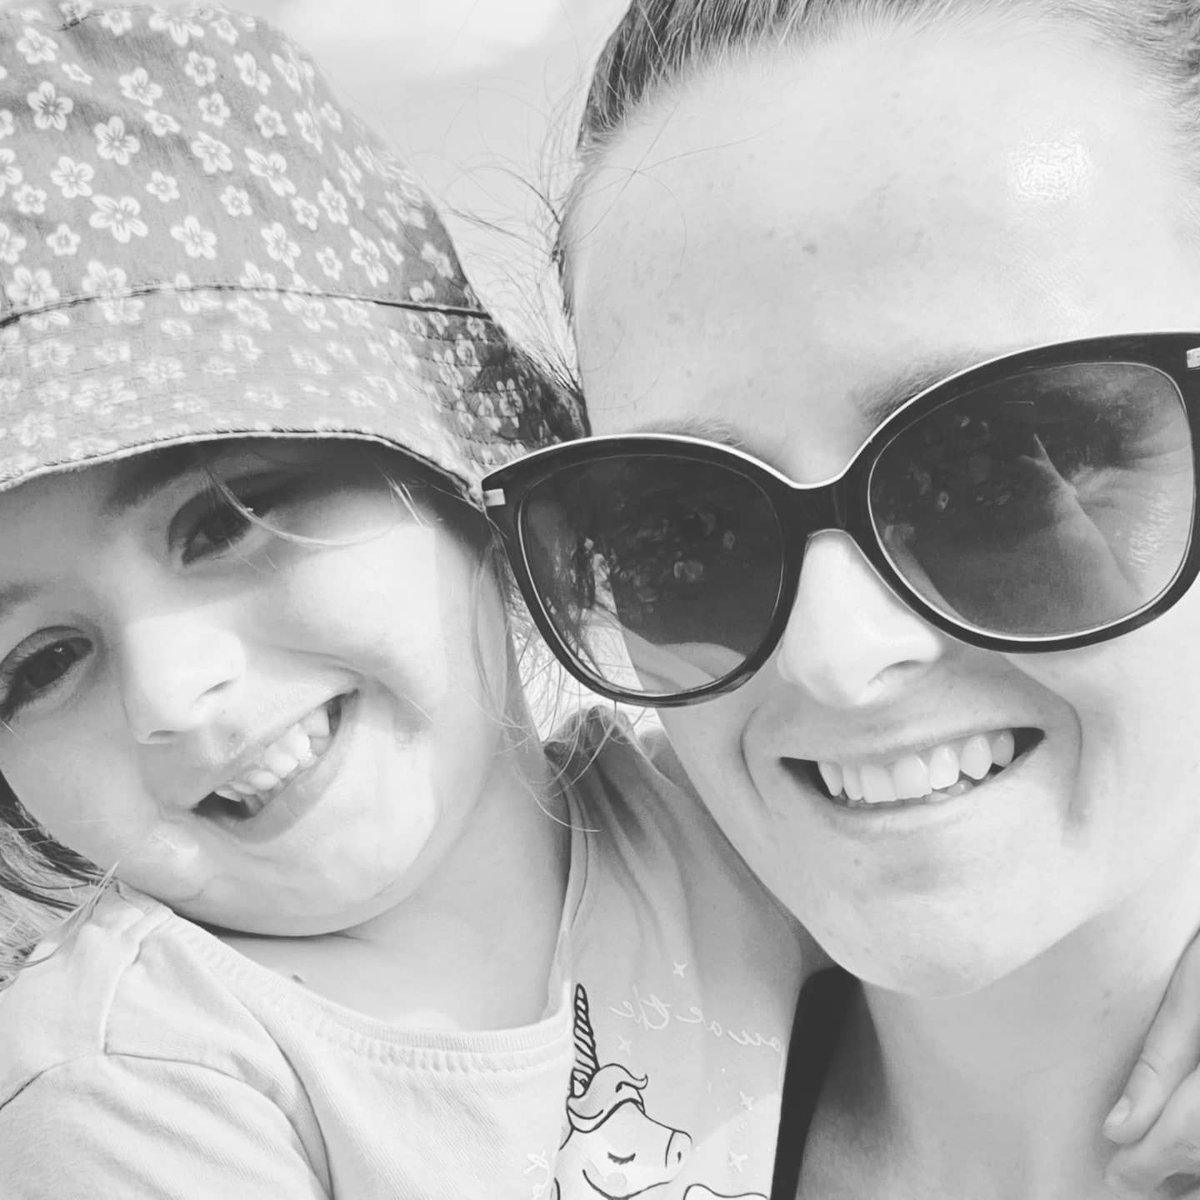 Adventures with my baby girl. A day well spent #family #AdventureTime #motherdaughter pic.twitter.com/CyH1JPMvKd